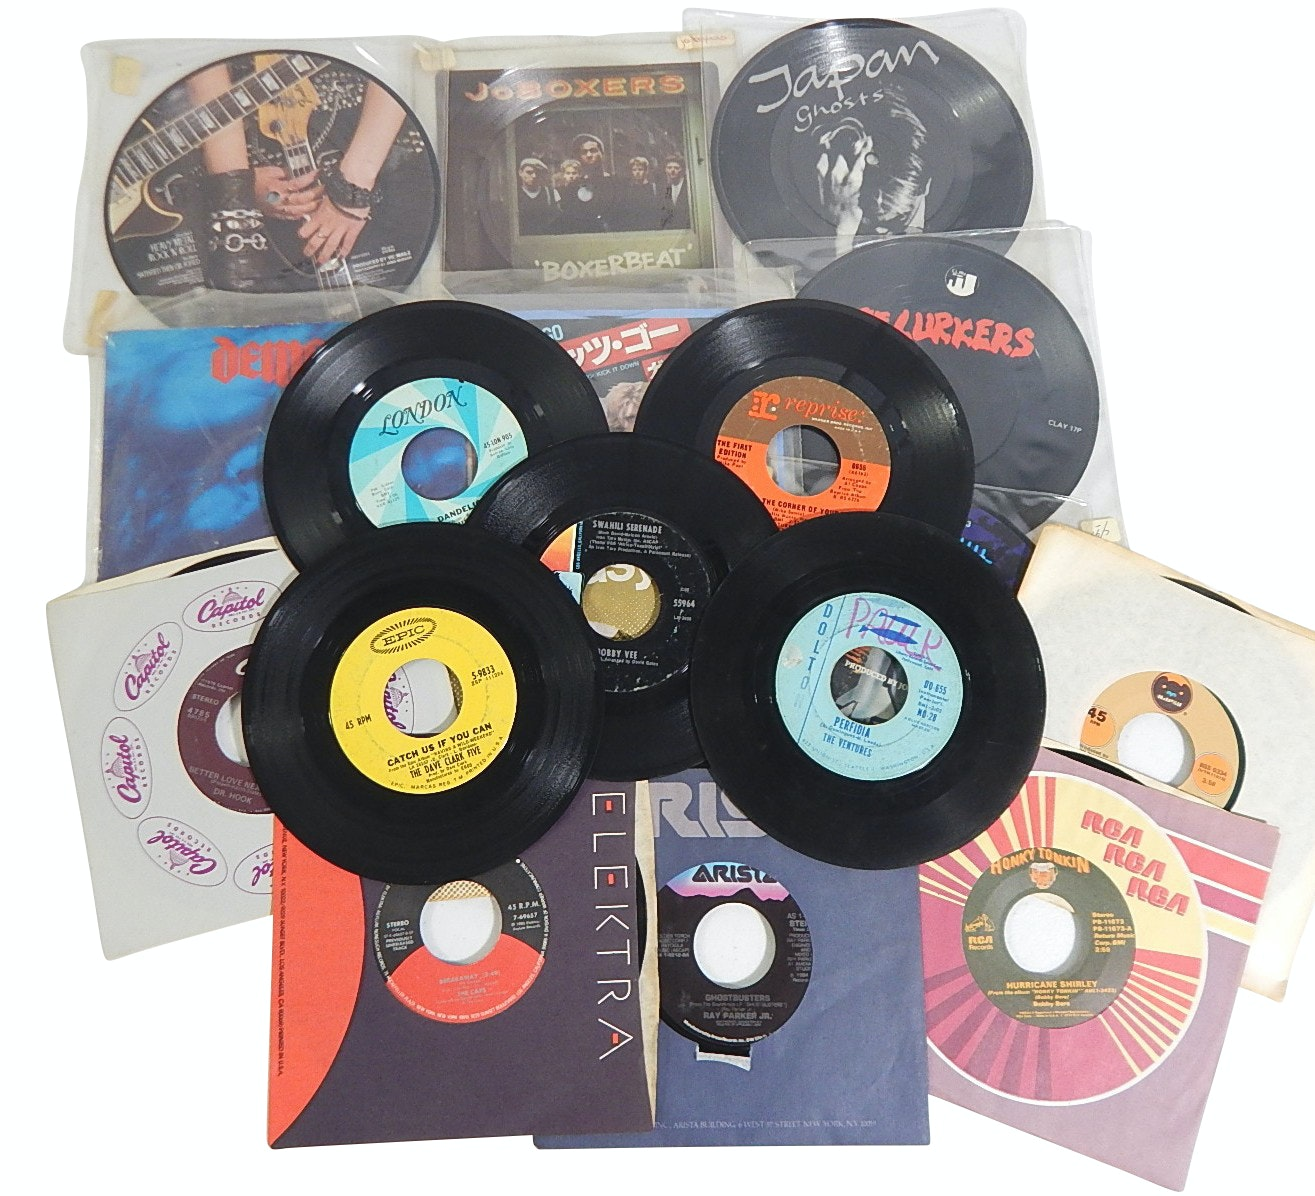 1970s Picture Discs and 45 RPM Records with The Rolling Stones,Dr. Hook,The Cars